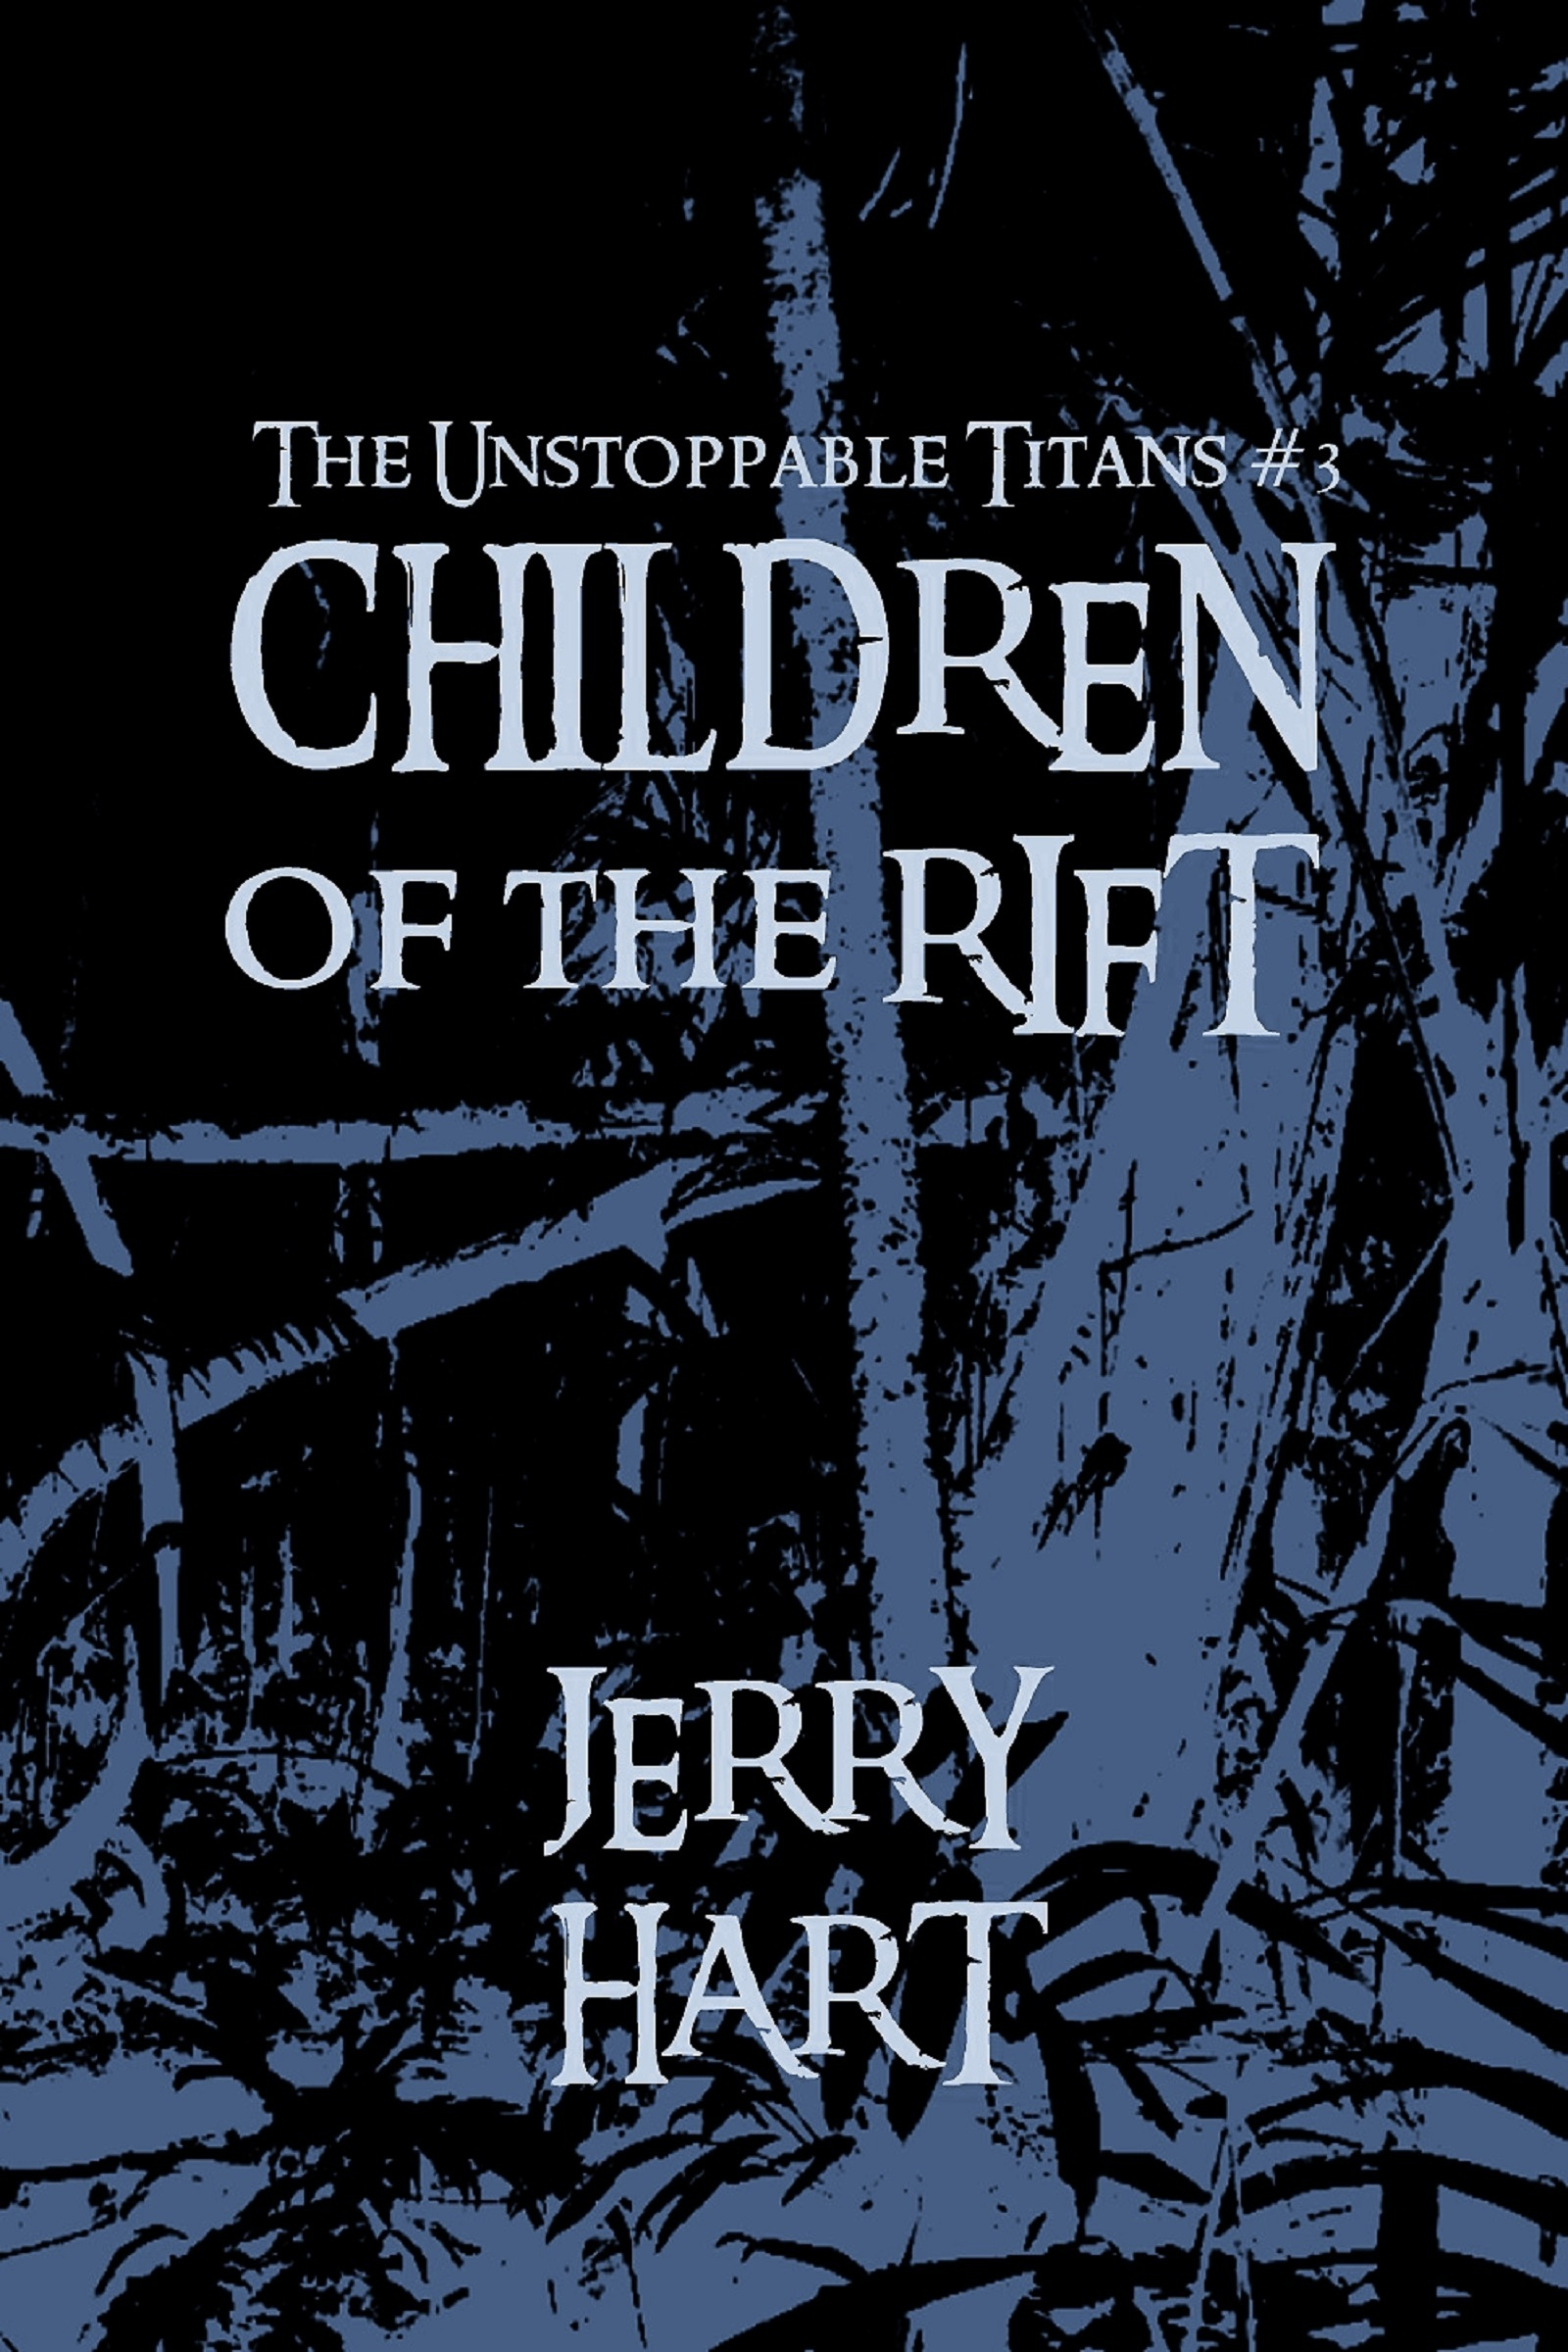 The Unstoppable Titans: Children of the Rift